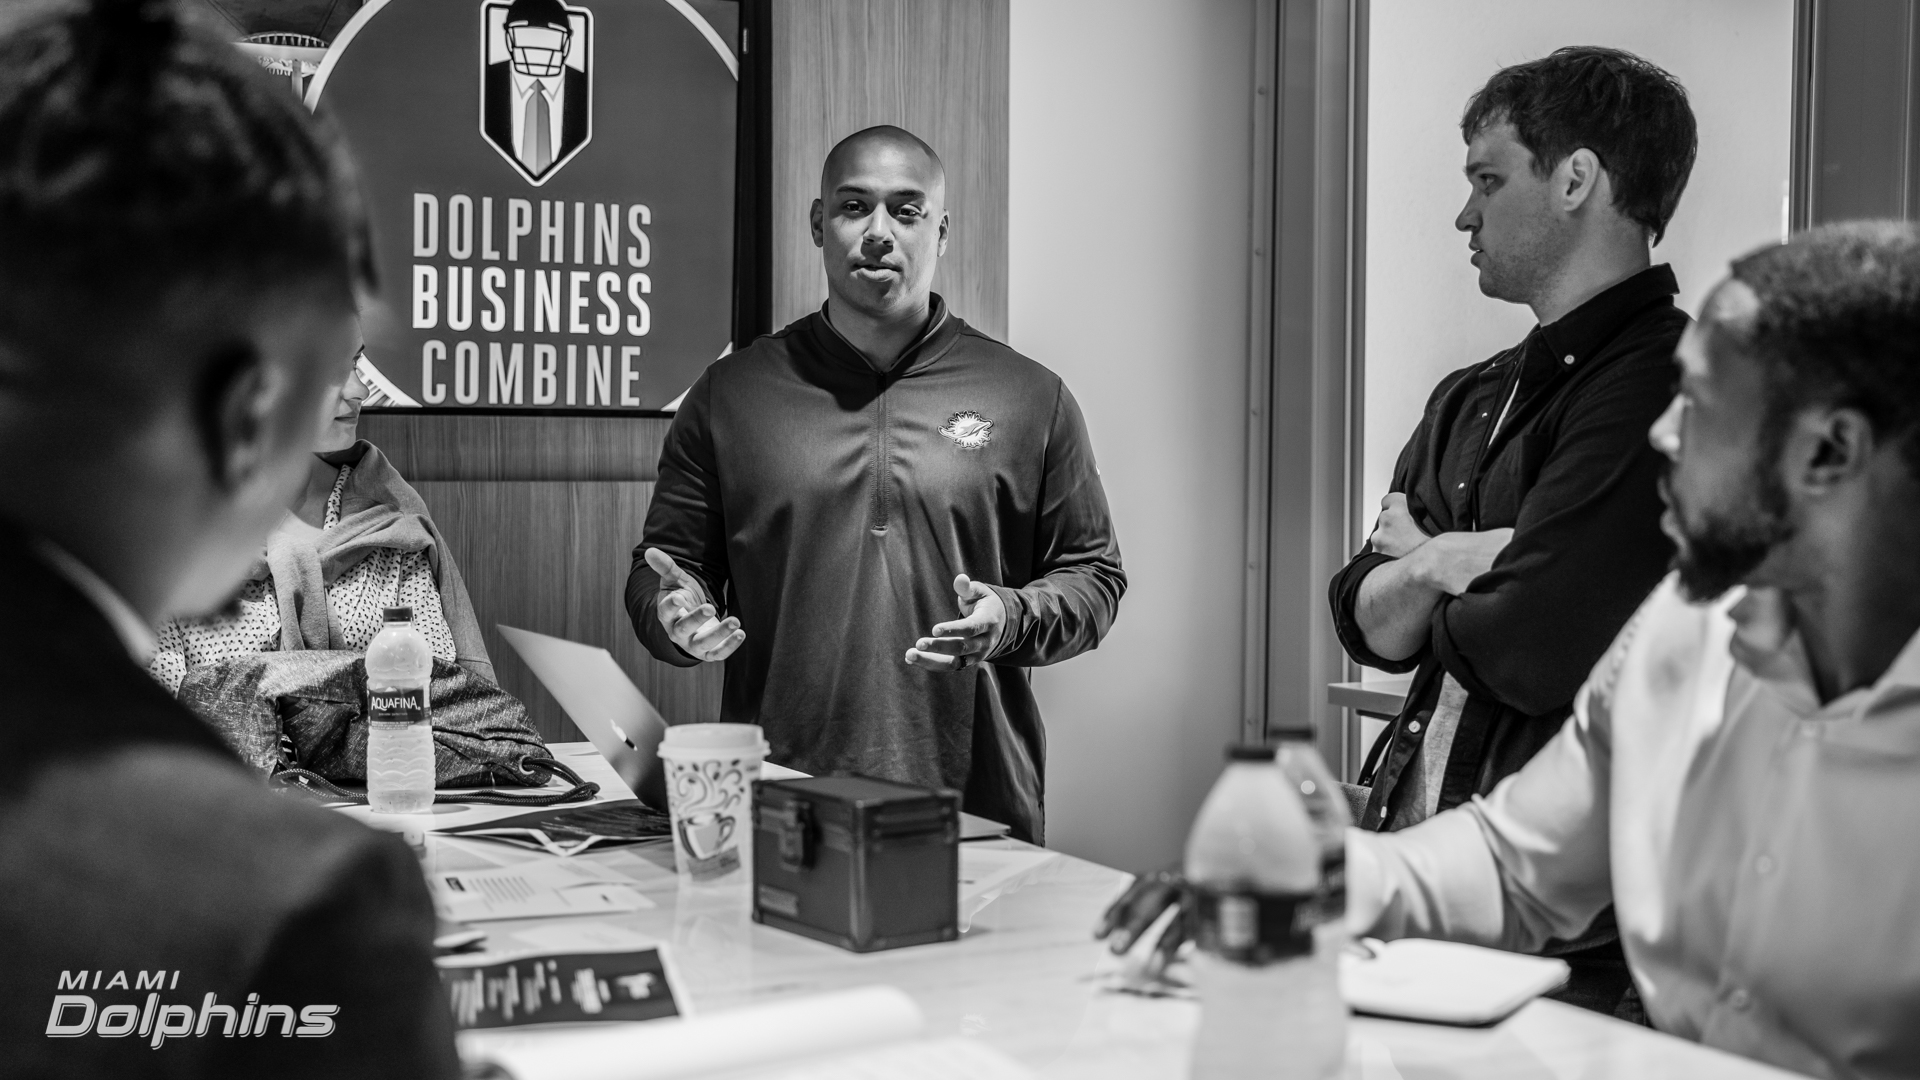 Kaleb Thornhill at Dolphins Business Com